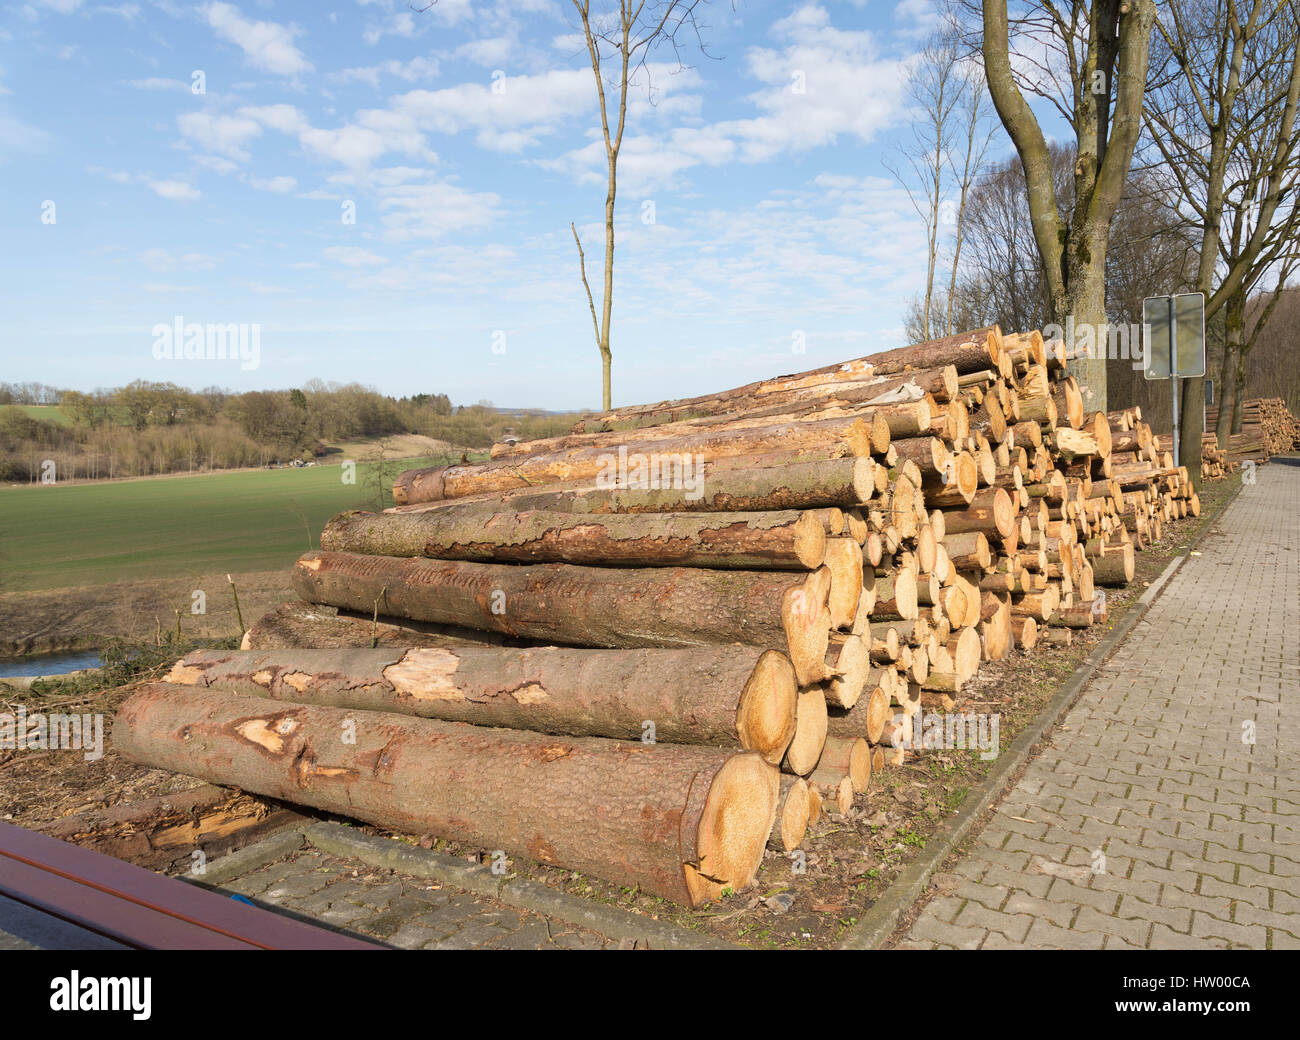 Freshly cut tree logs piled up near the road - Stock Image